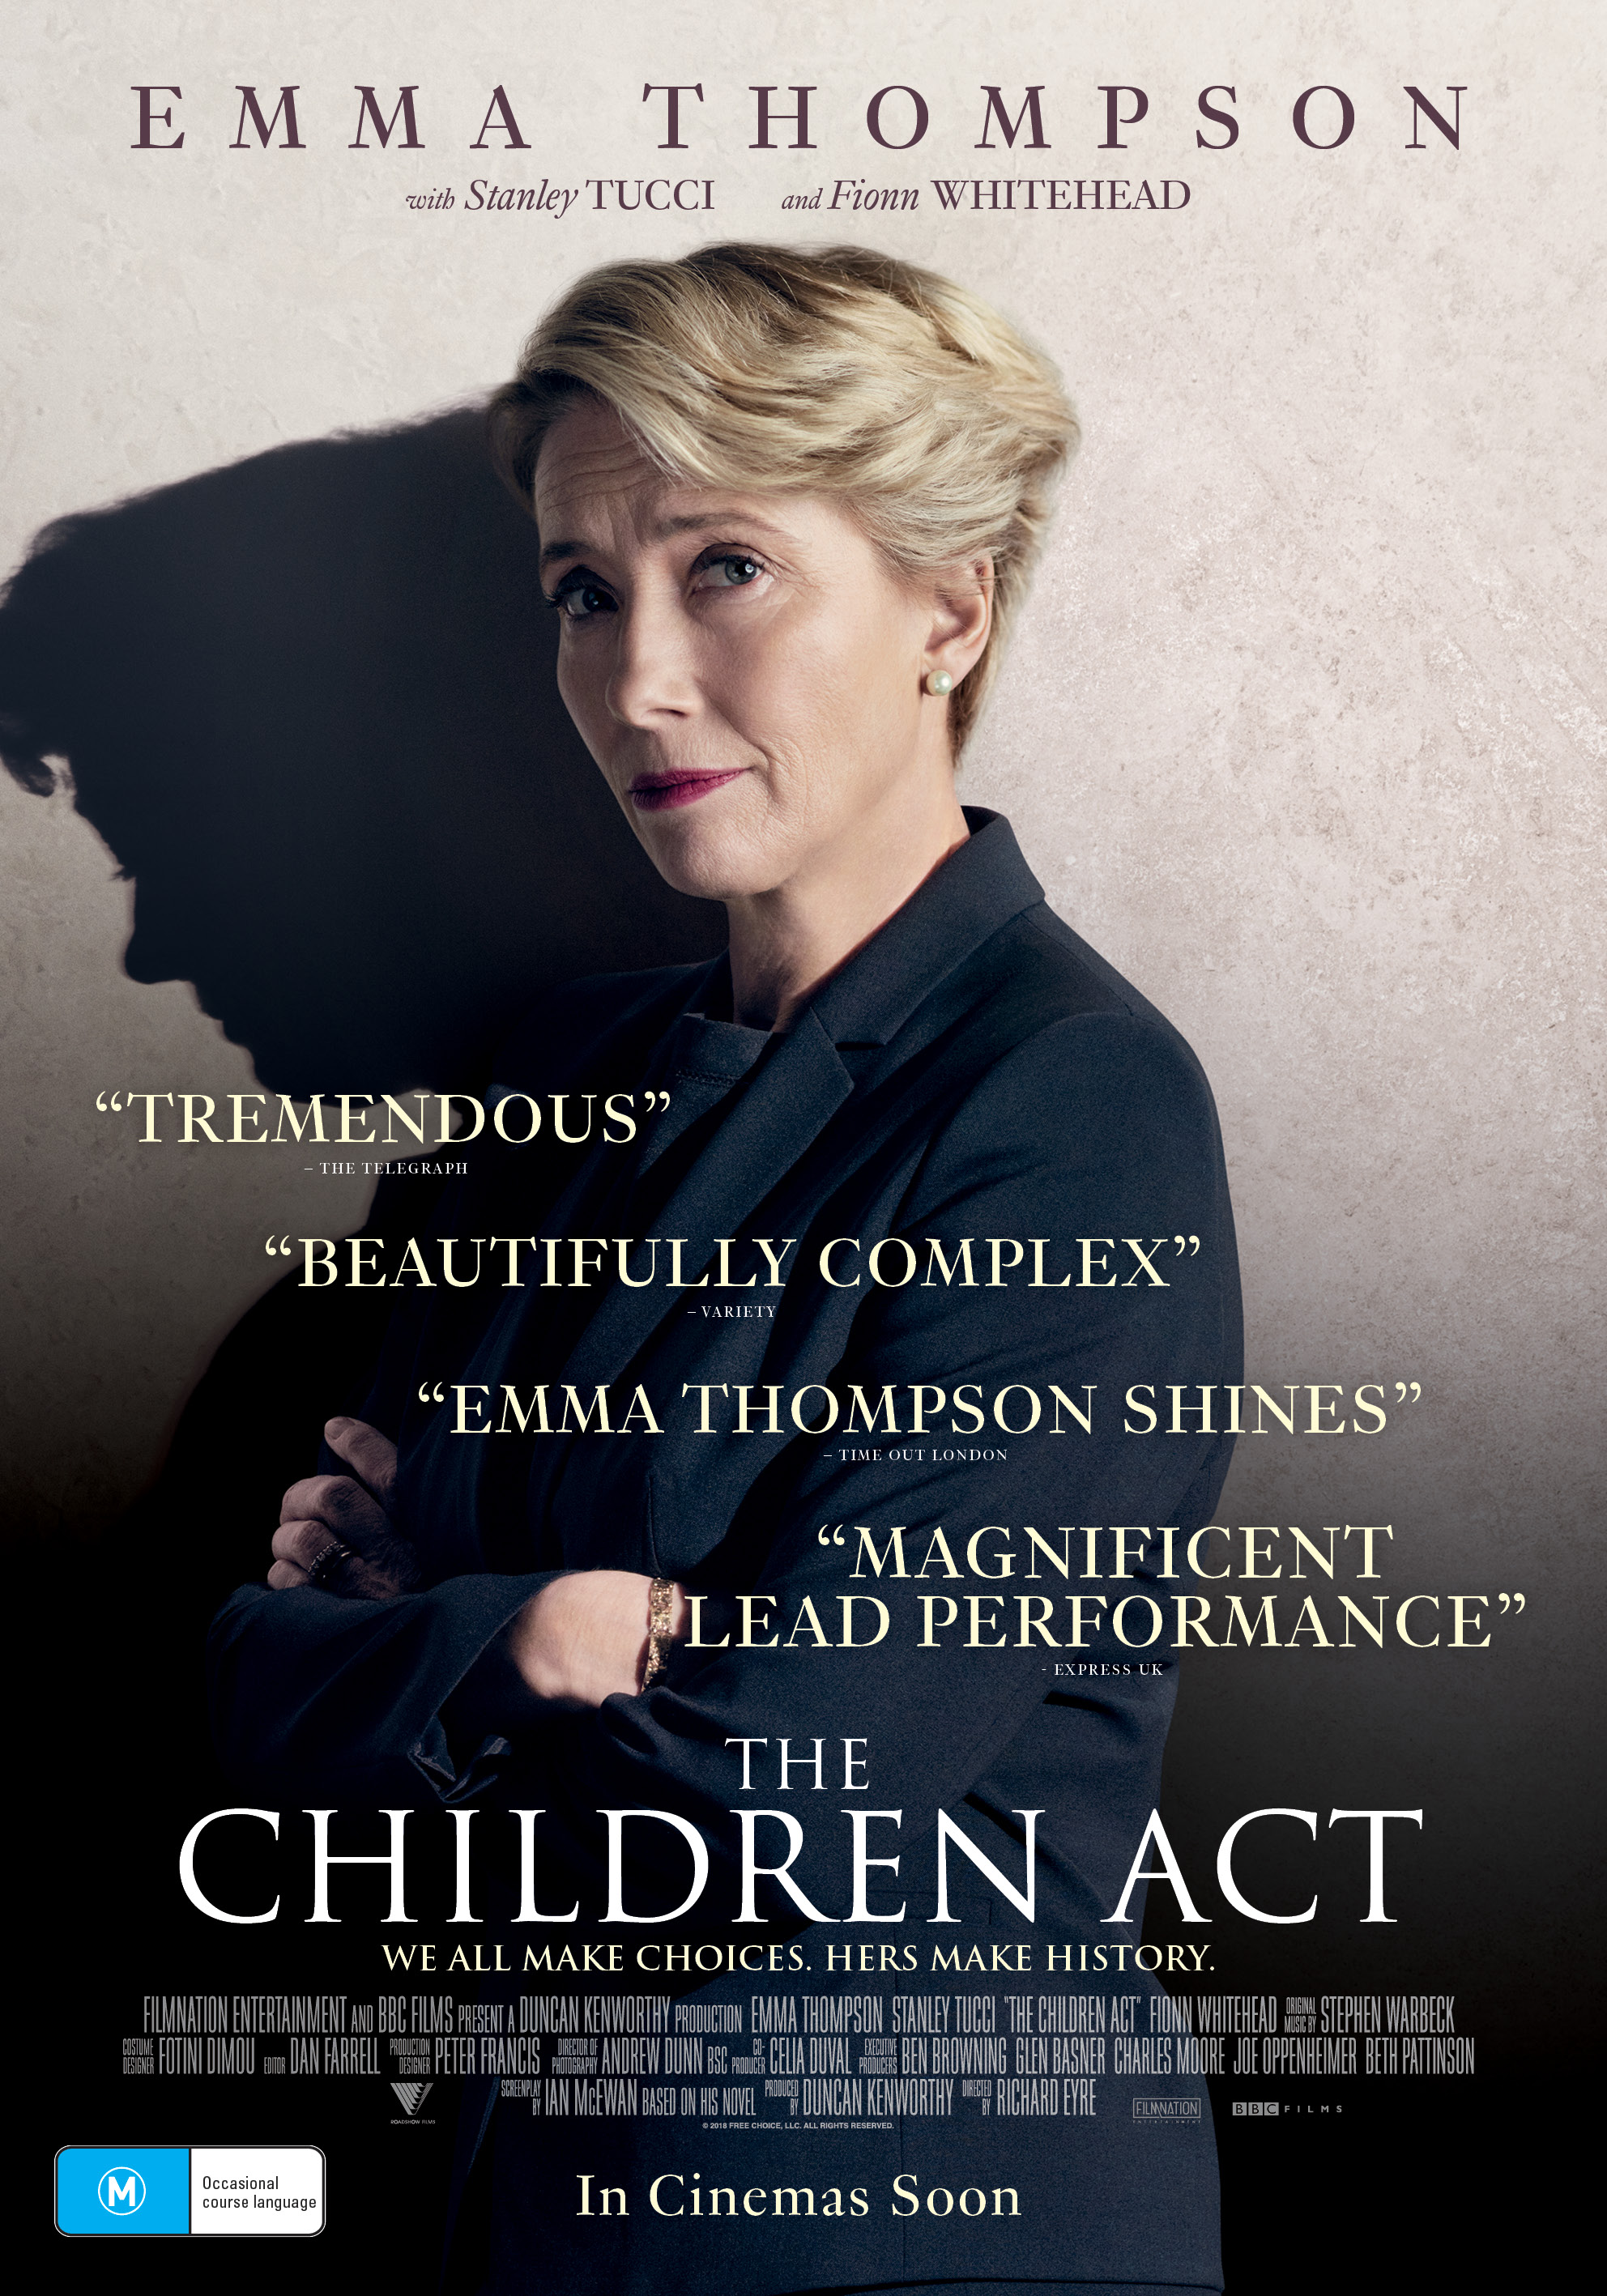 The Children Act movie poster